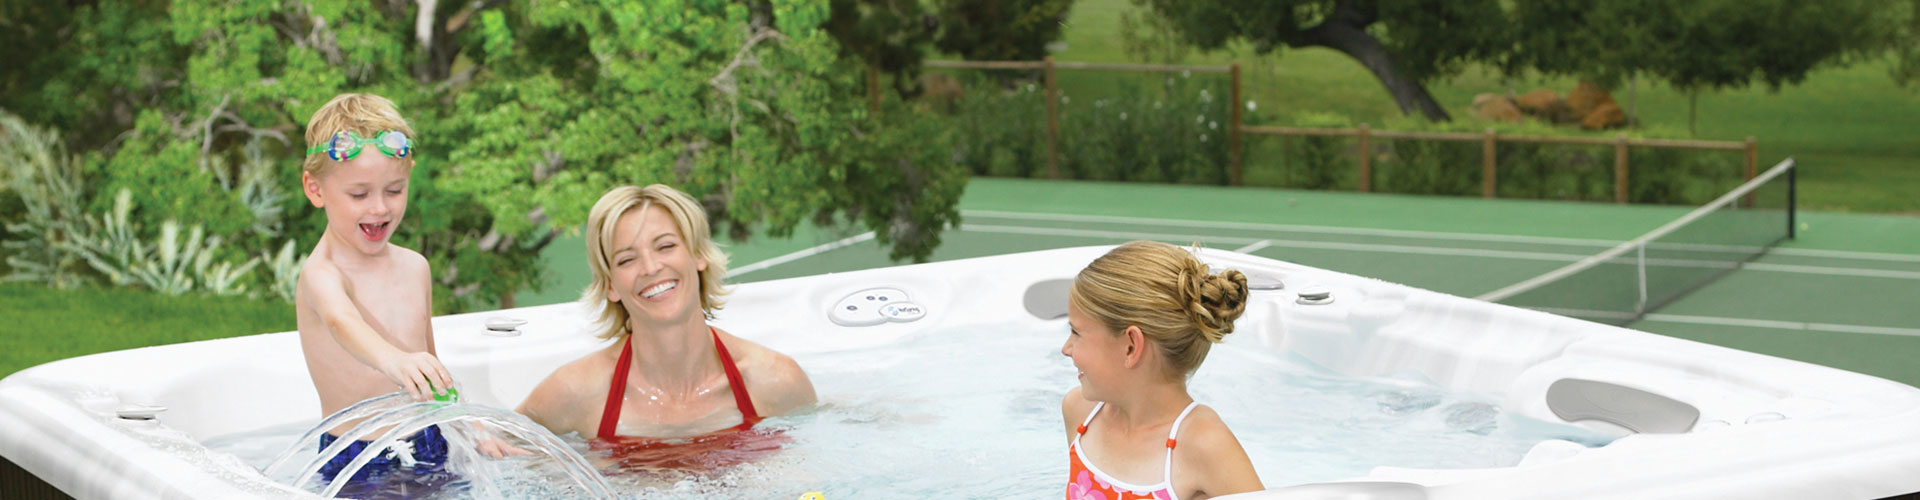 Make the most of your hot tub this summer